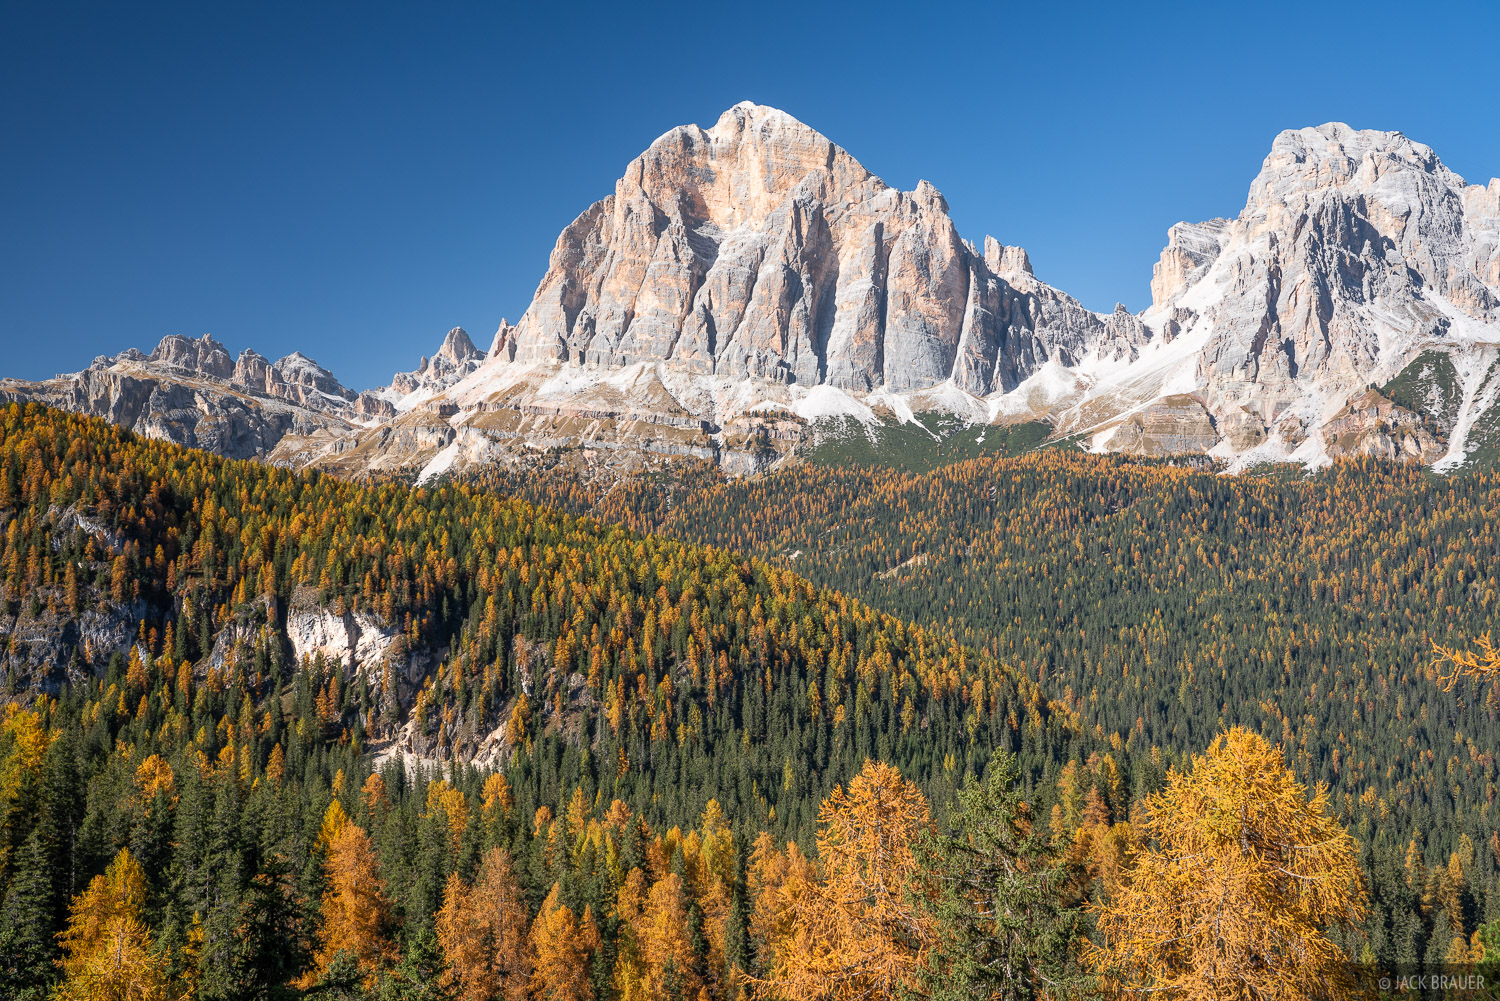 Tofana de Rozes above a forest of larch trees.